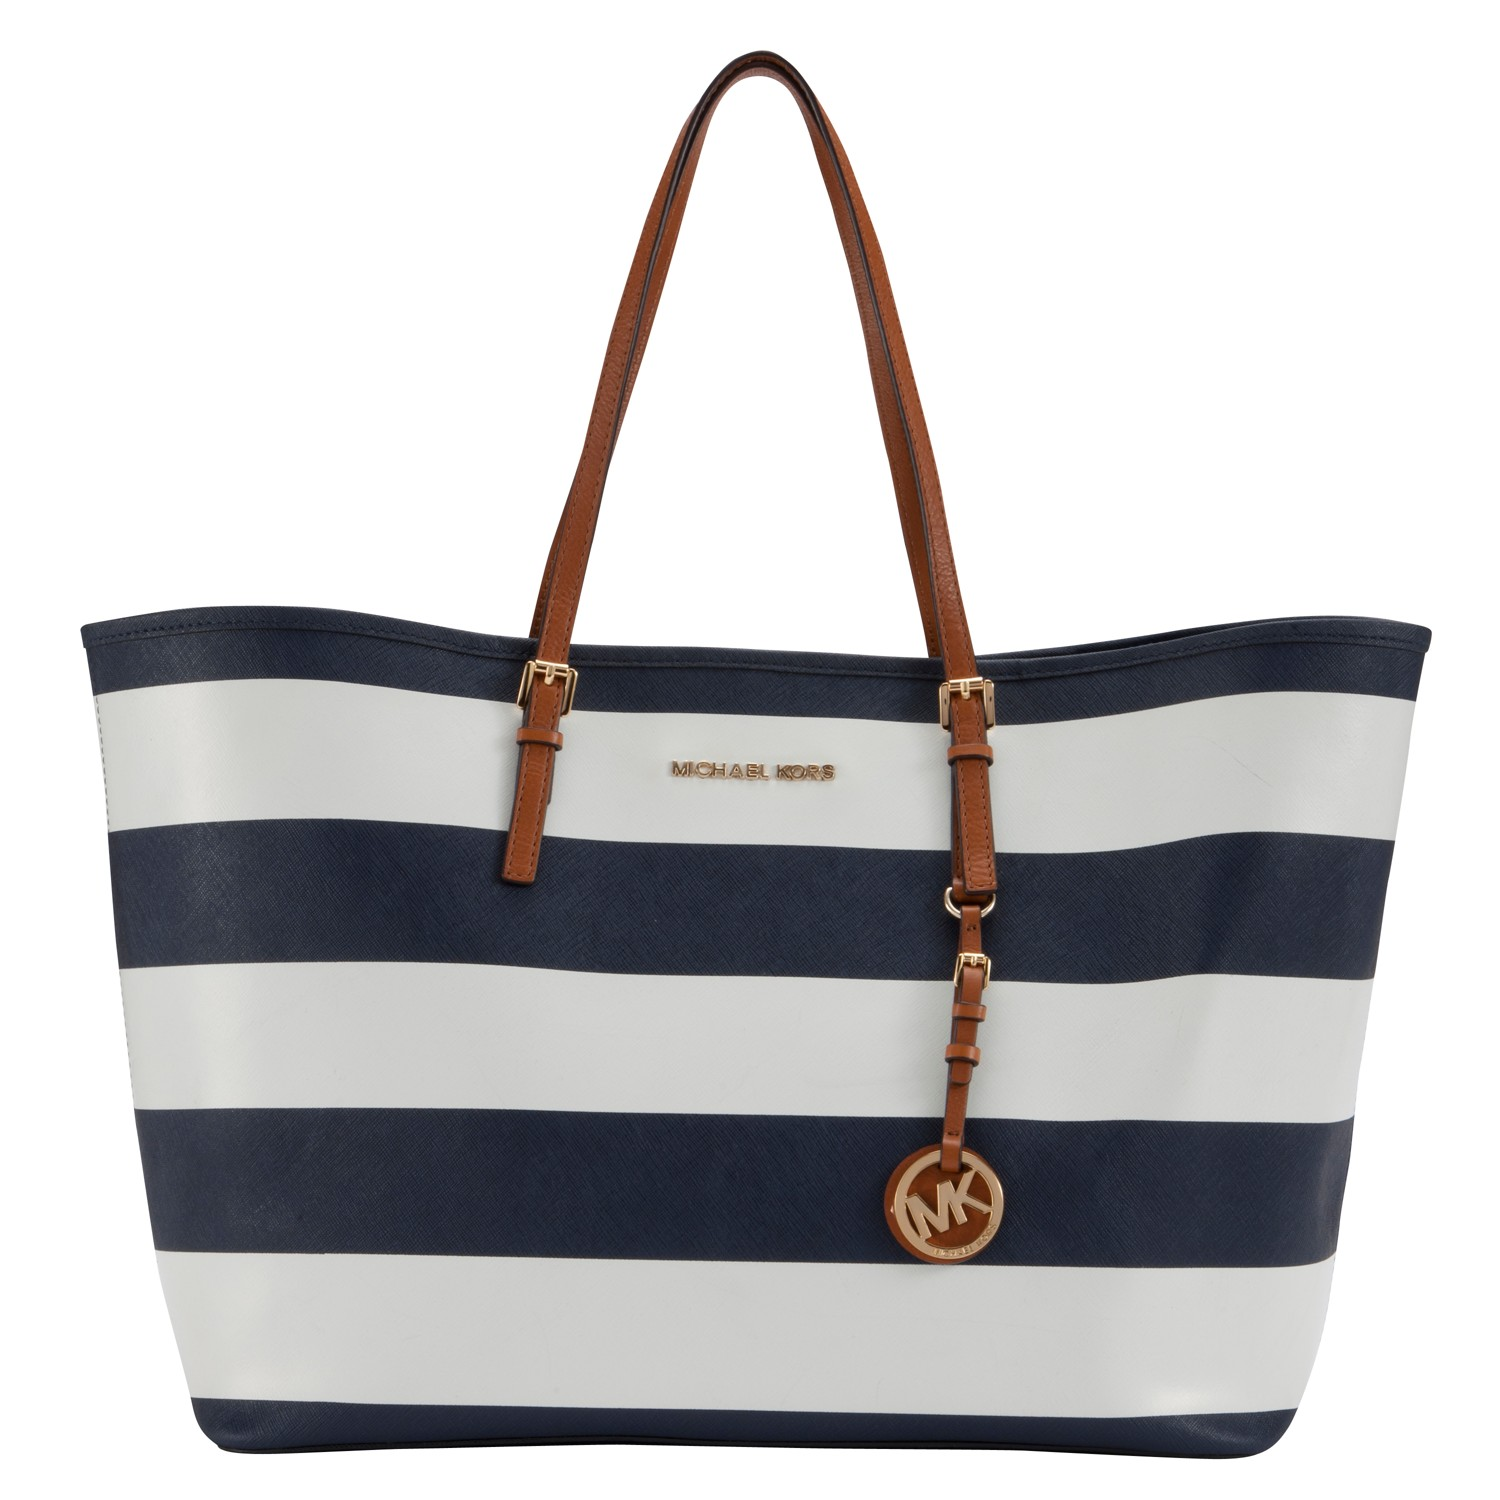 bcc1fff2b898ad Michael Kors Navy And White Striped Tote | Stanford Center for ...